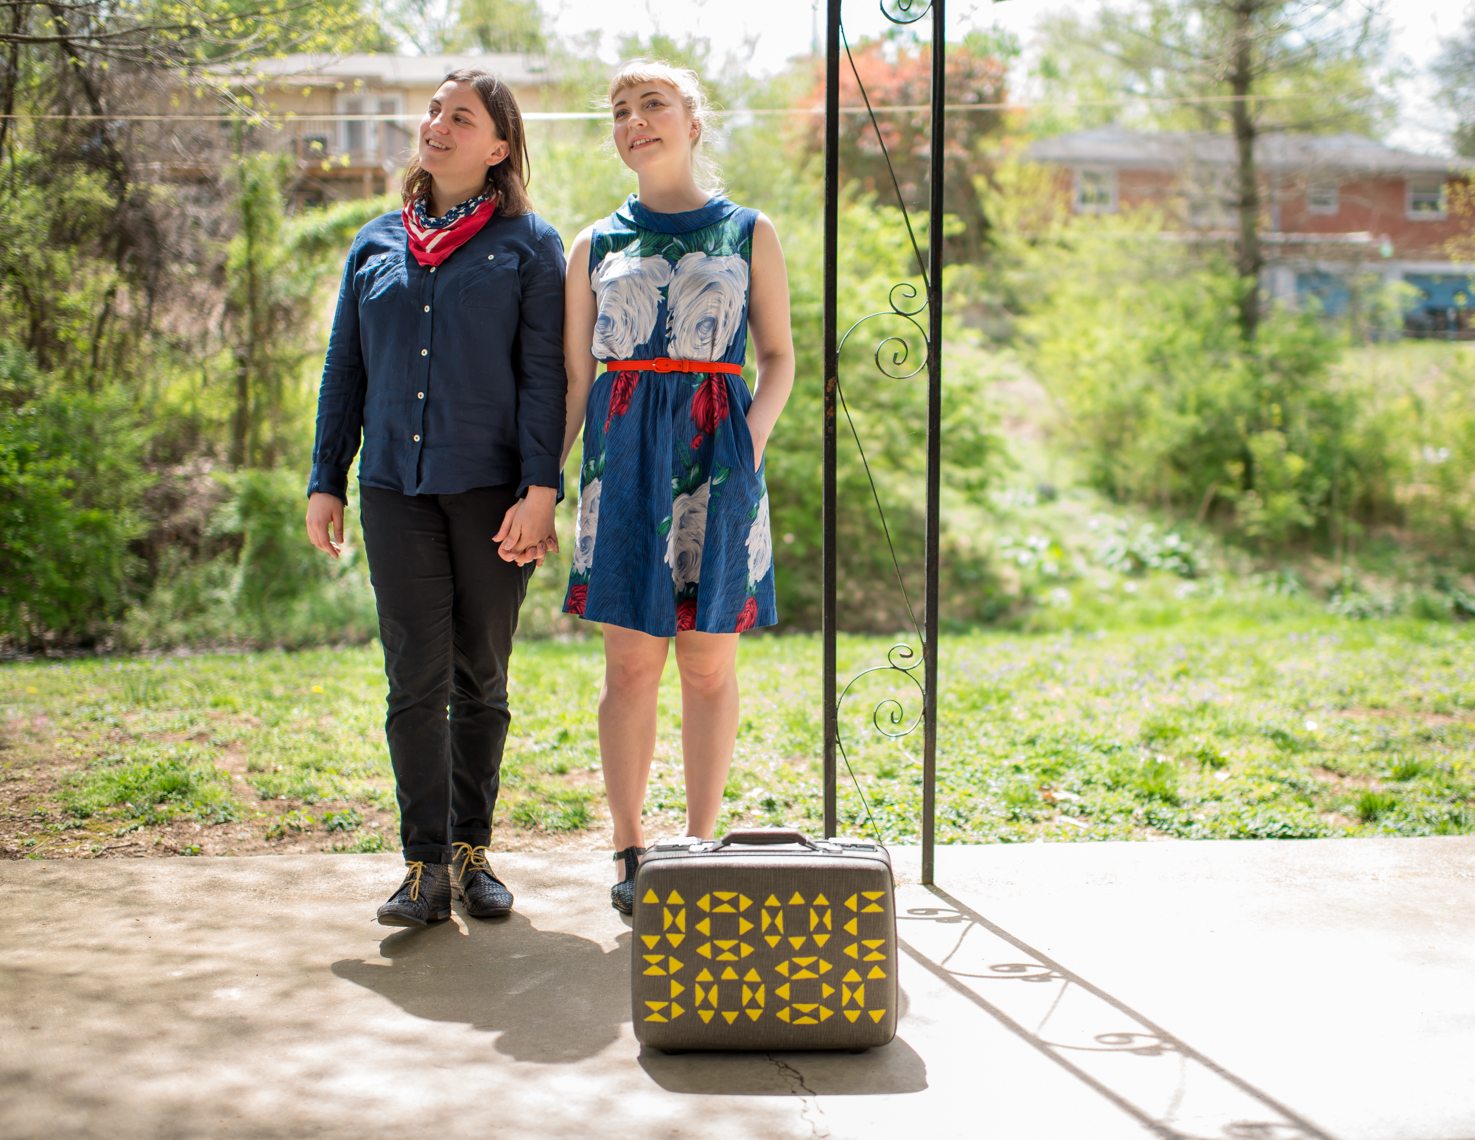 Charity & Michela, love, romance, couple, women, lesbian, gender identity, outdoor, portrait, suitcase, travel, porch, LGBT rights, gay marriage, relationship, reportage, Nashville editorial, photojournalist, portrait photographer, Kristina Krug